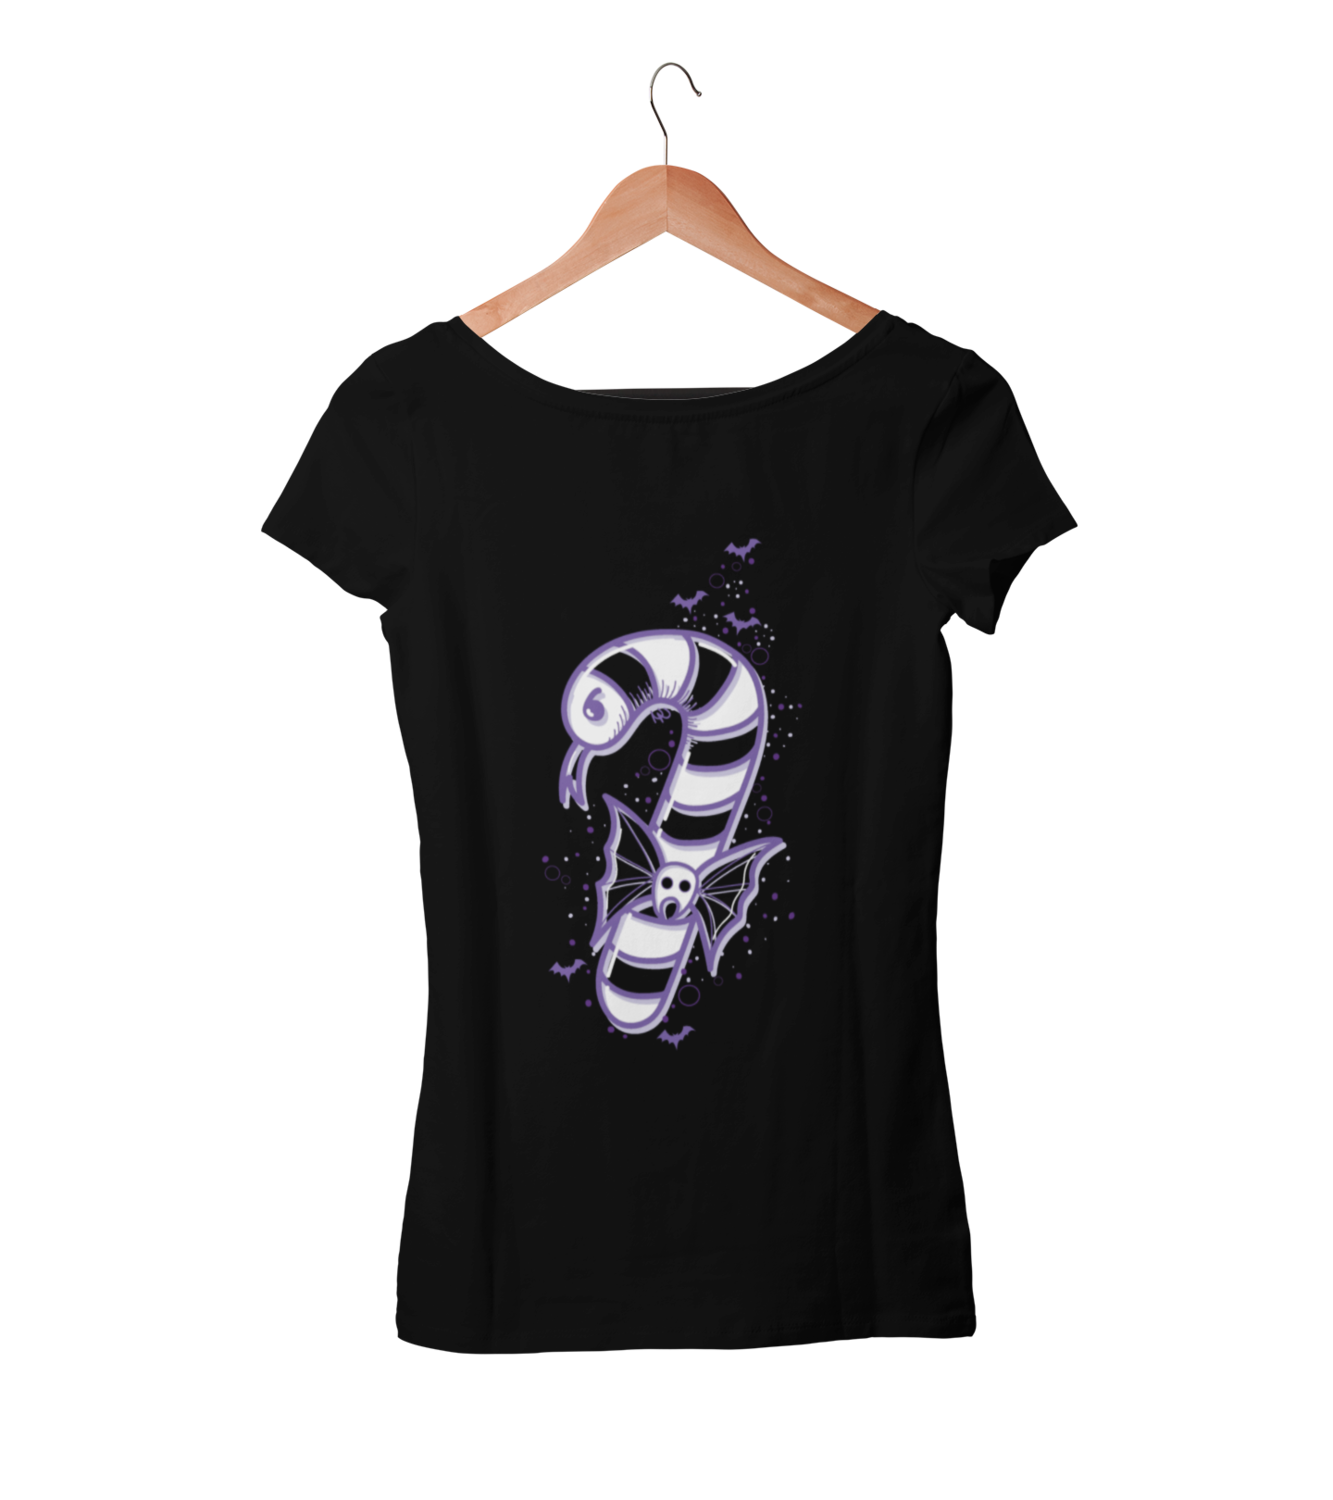 "NUNA NINGUNA ""baston"" tshirt for WOMEN"